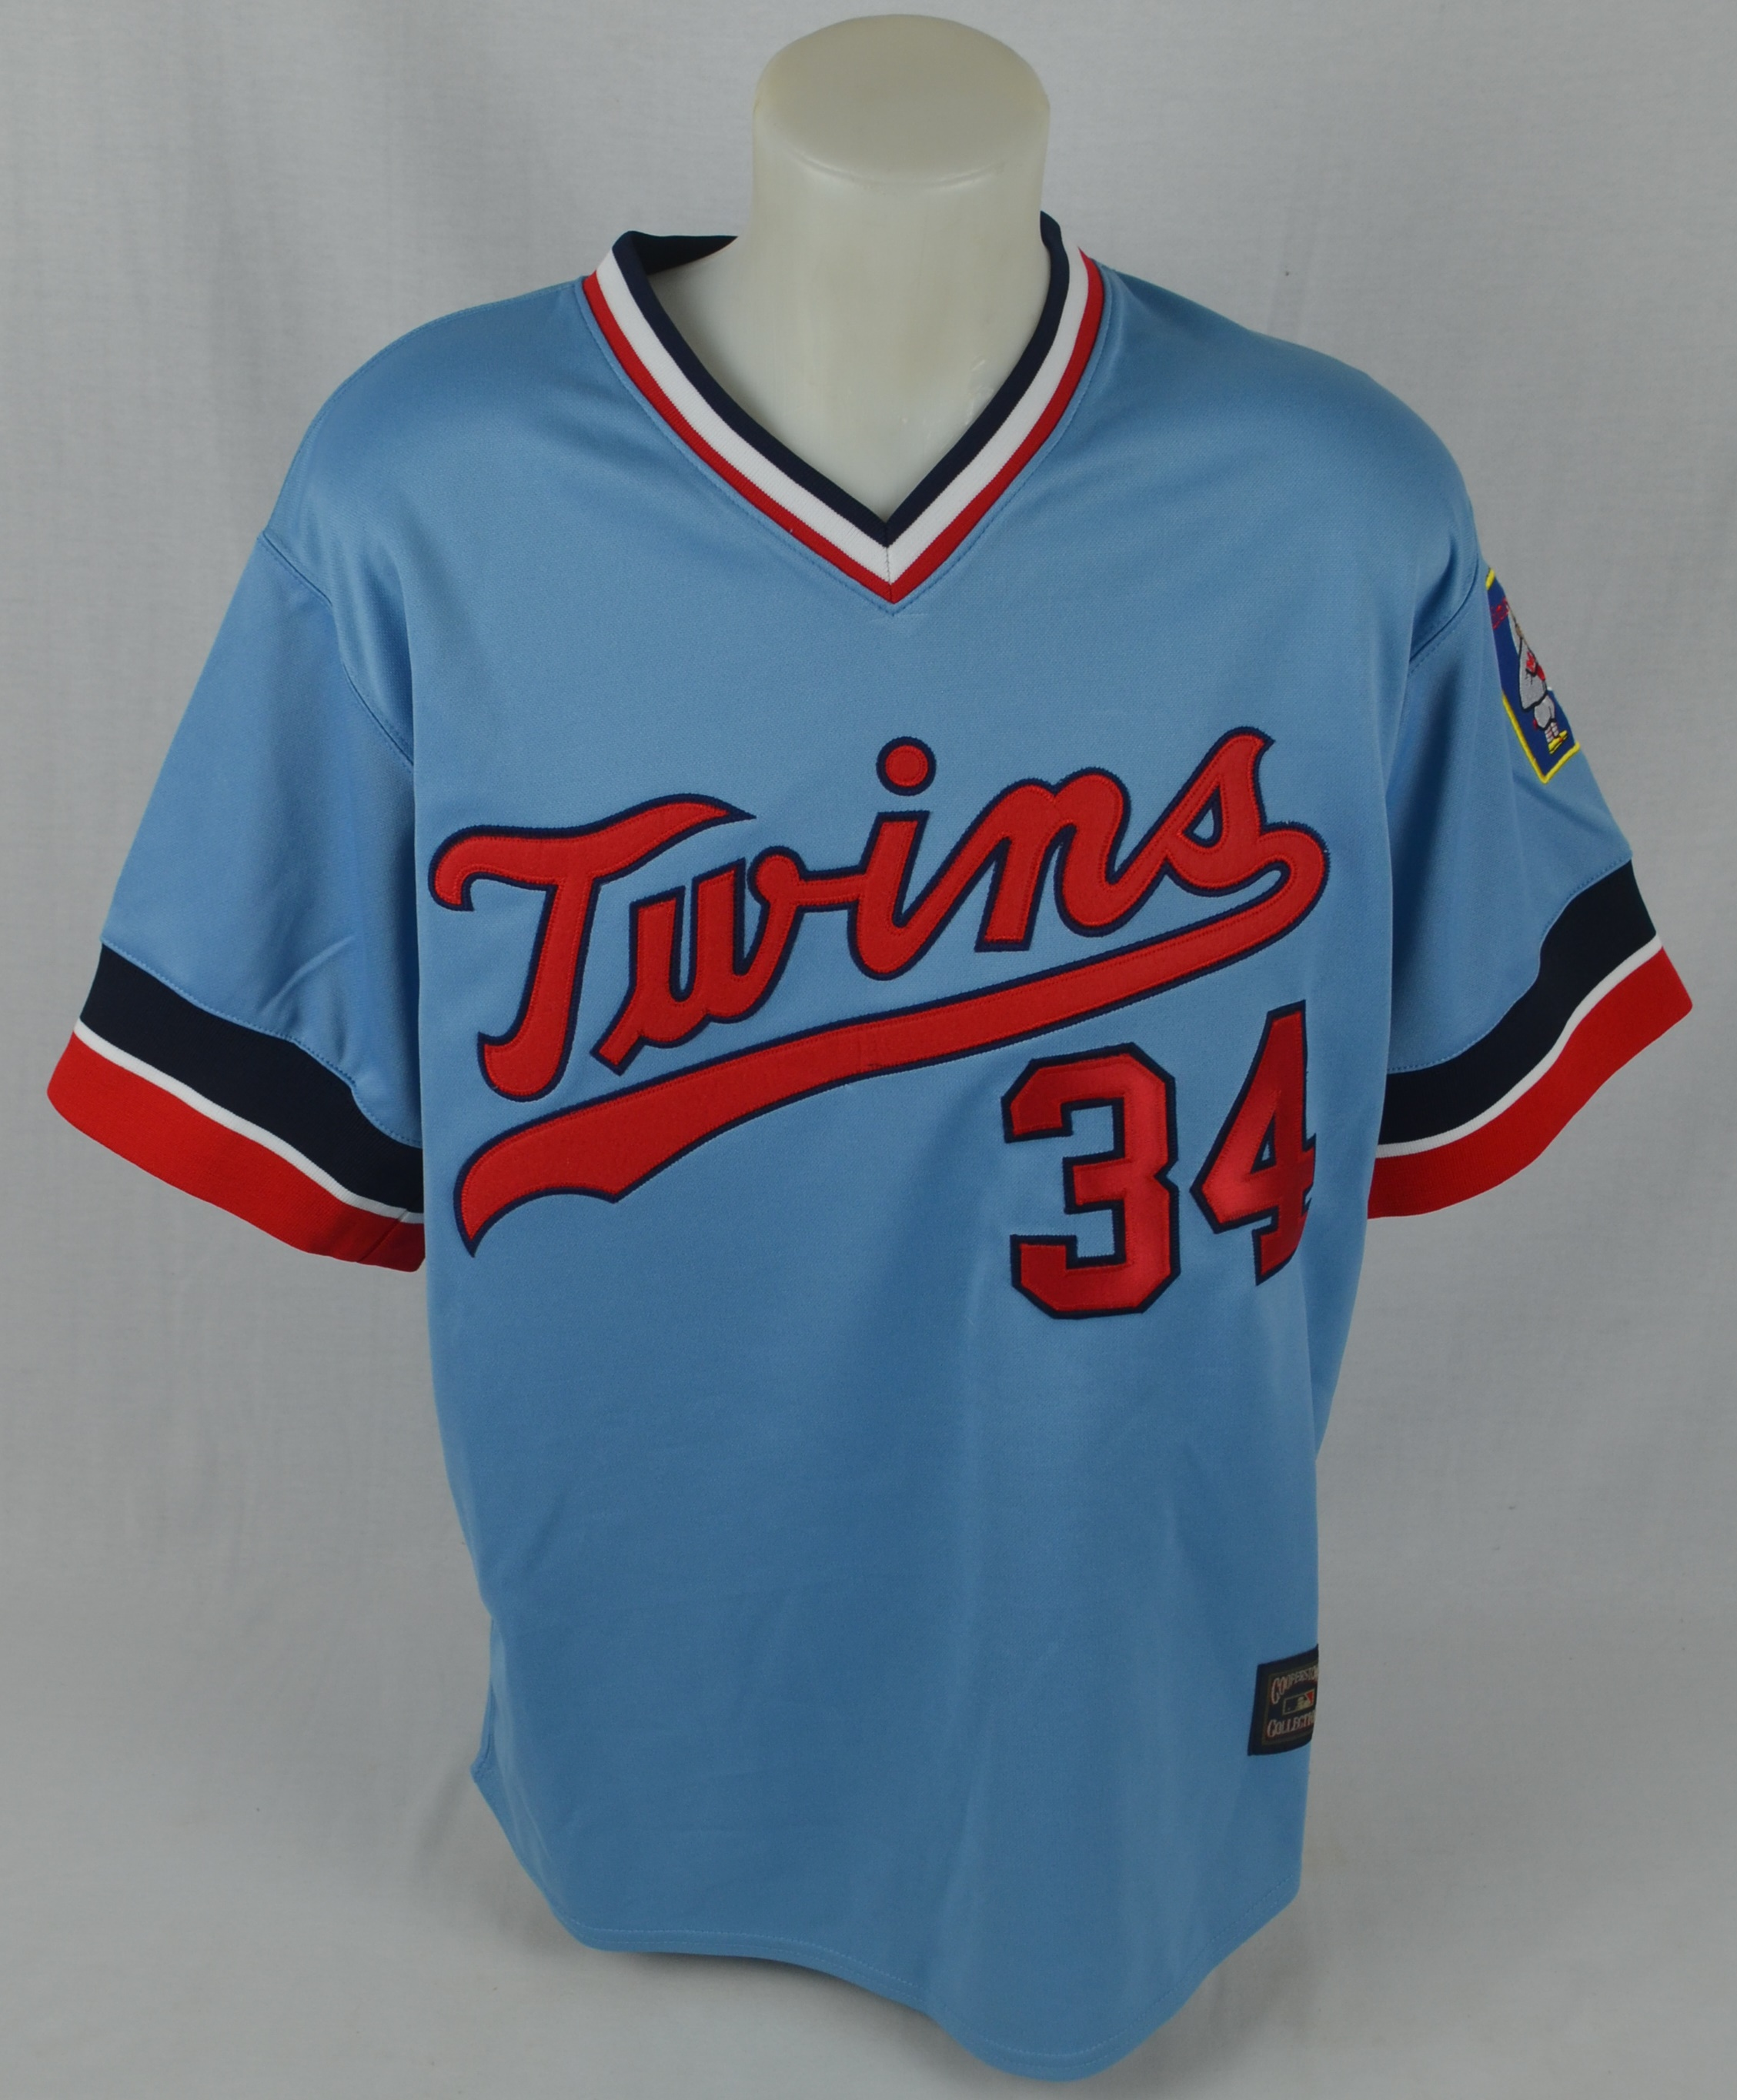 aa7c8cb0764 Lot Detail - Kirby Puckett Autographed 1984 Rookie Throwback Jersey